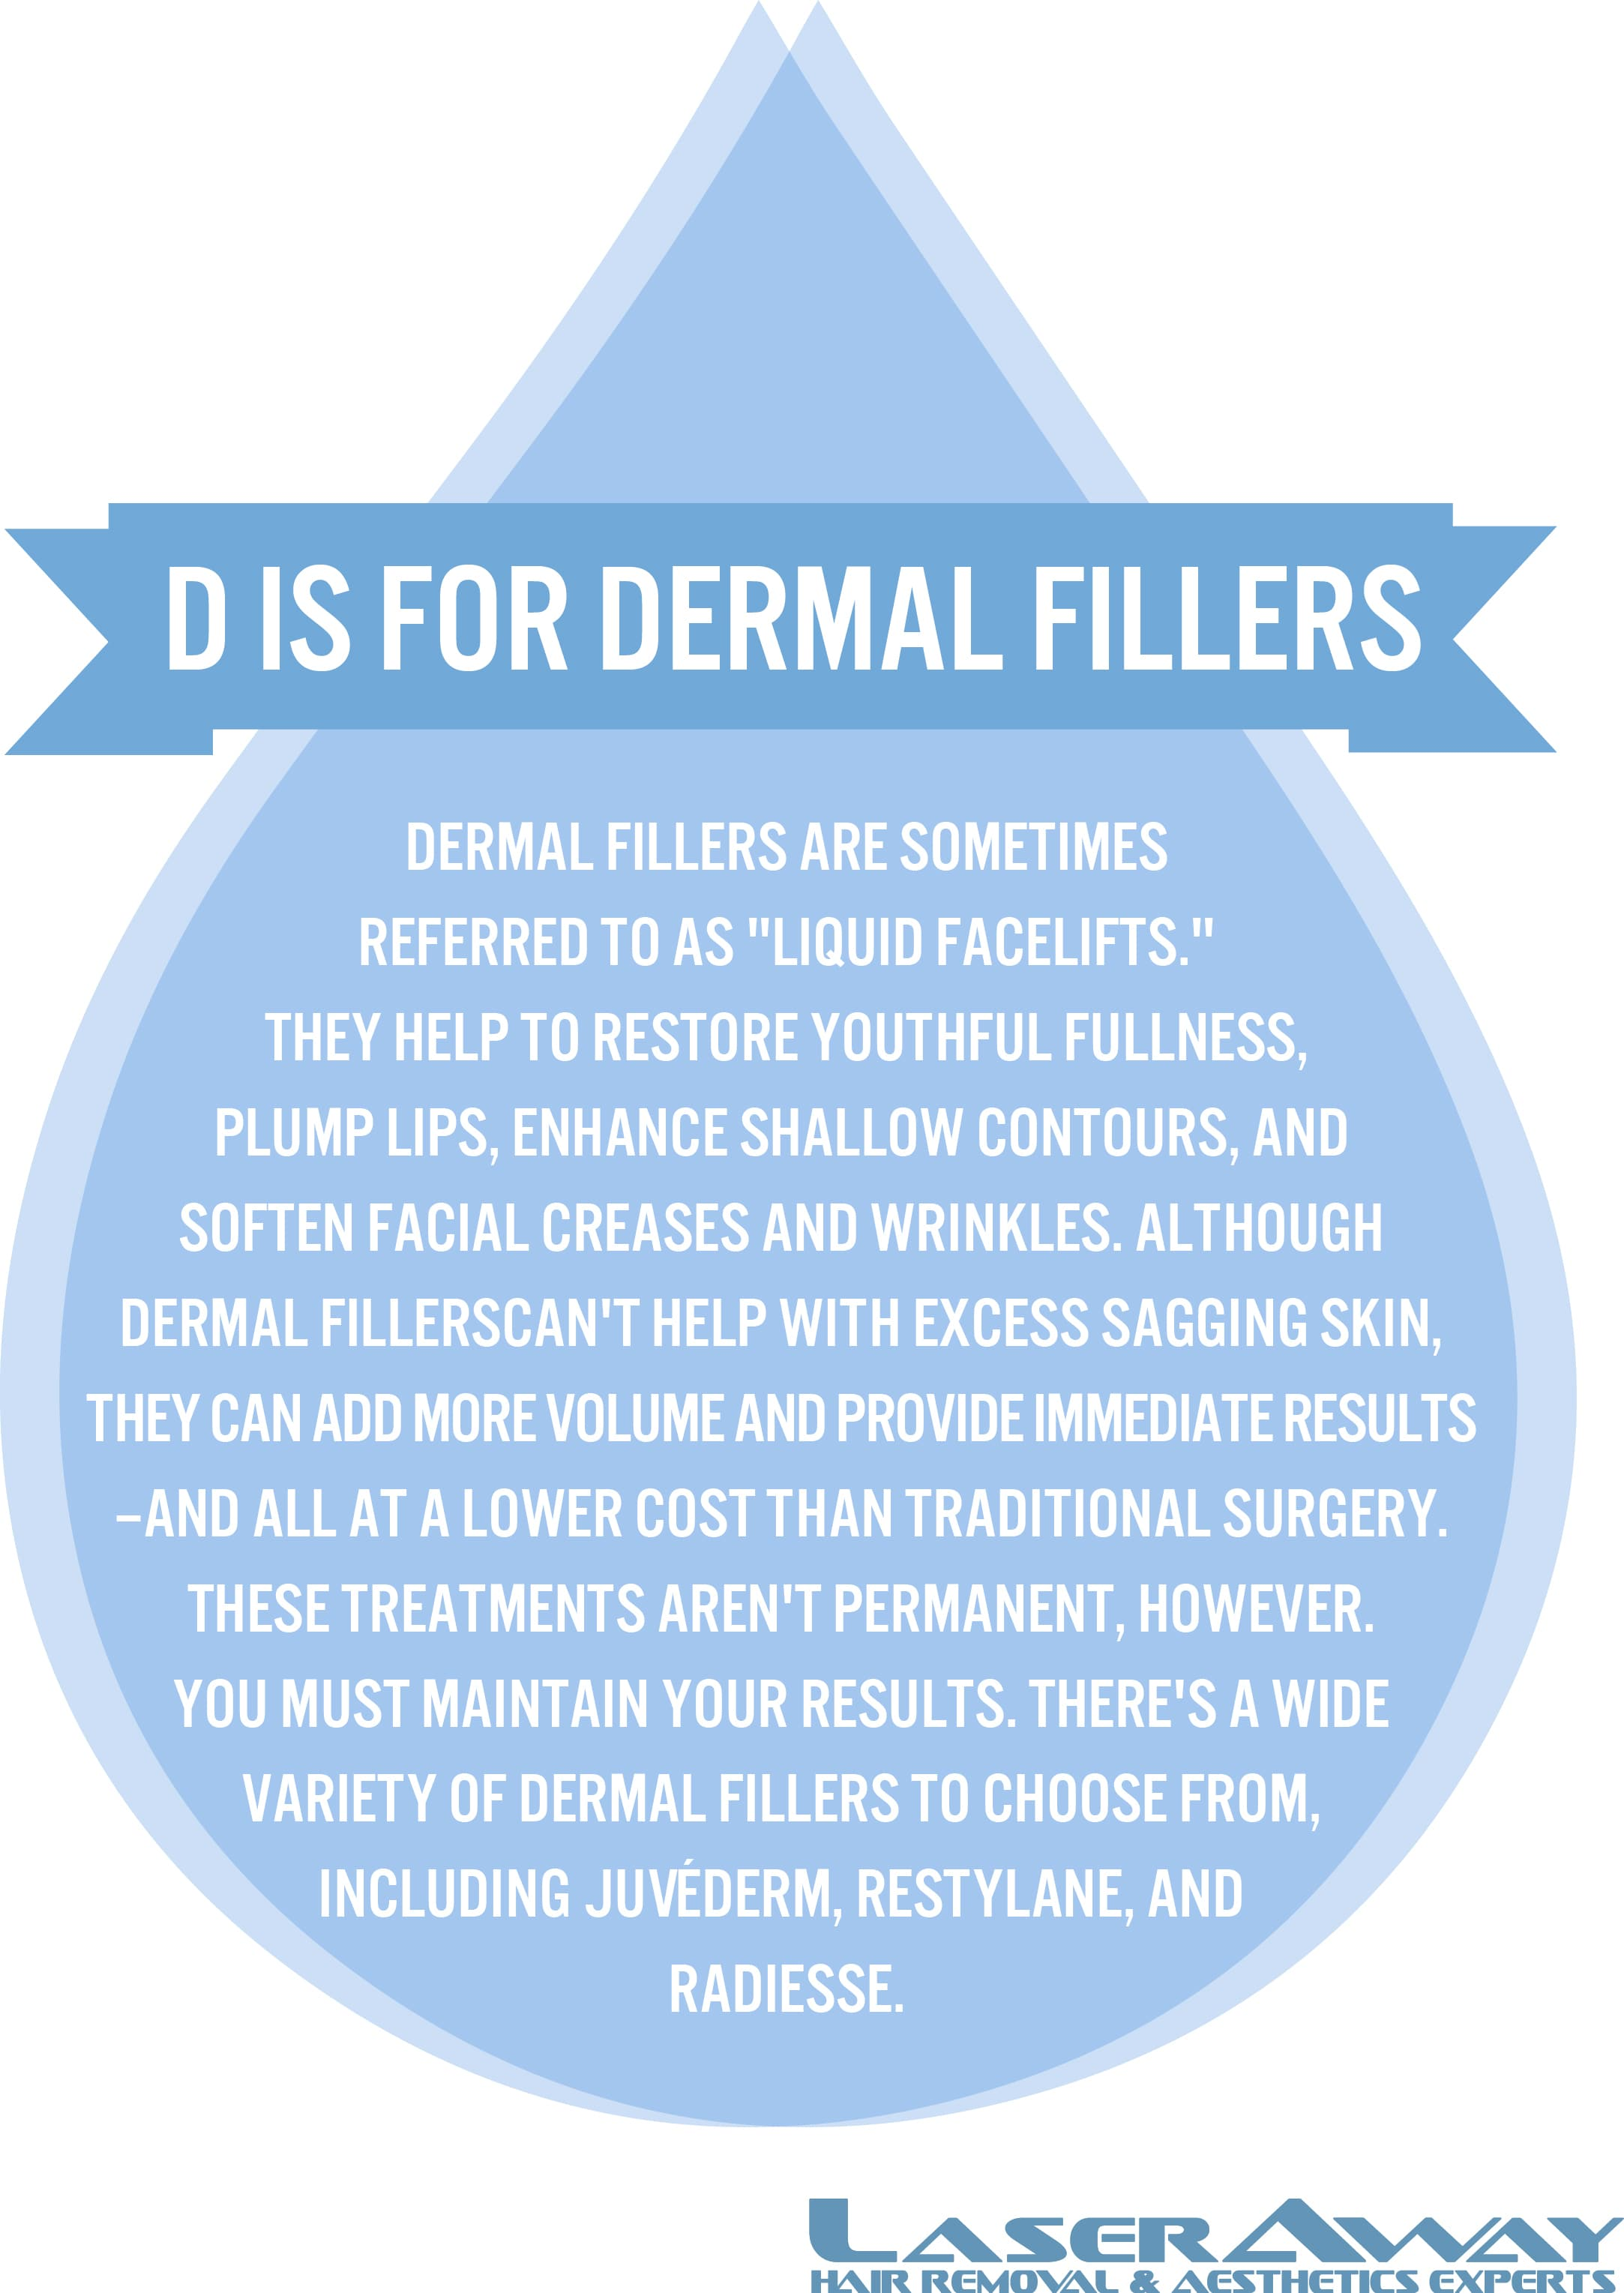 D Is For Dermal Fillers